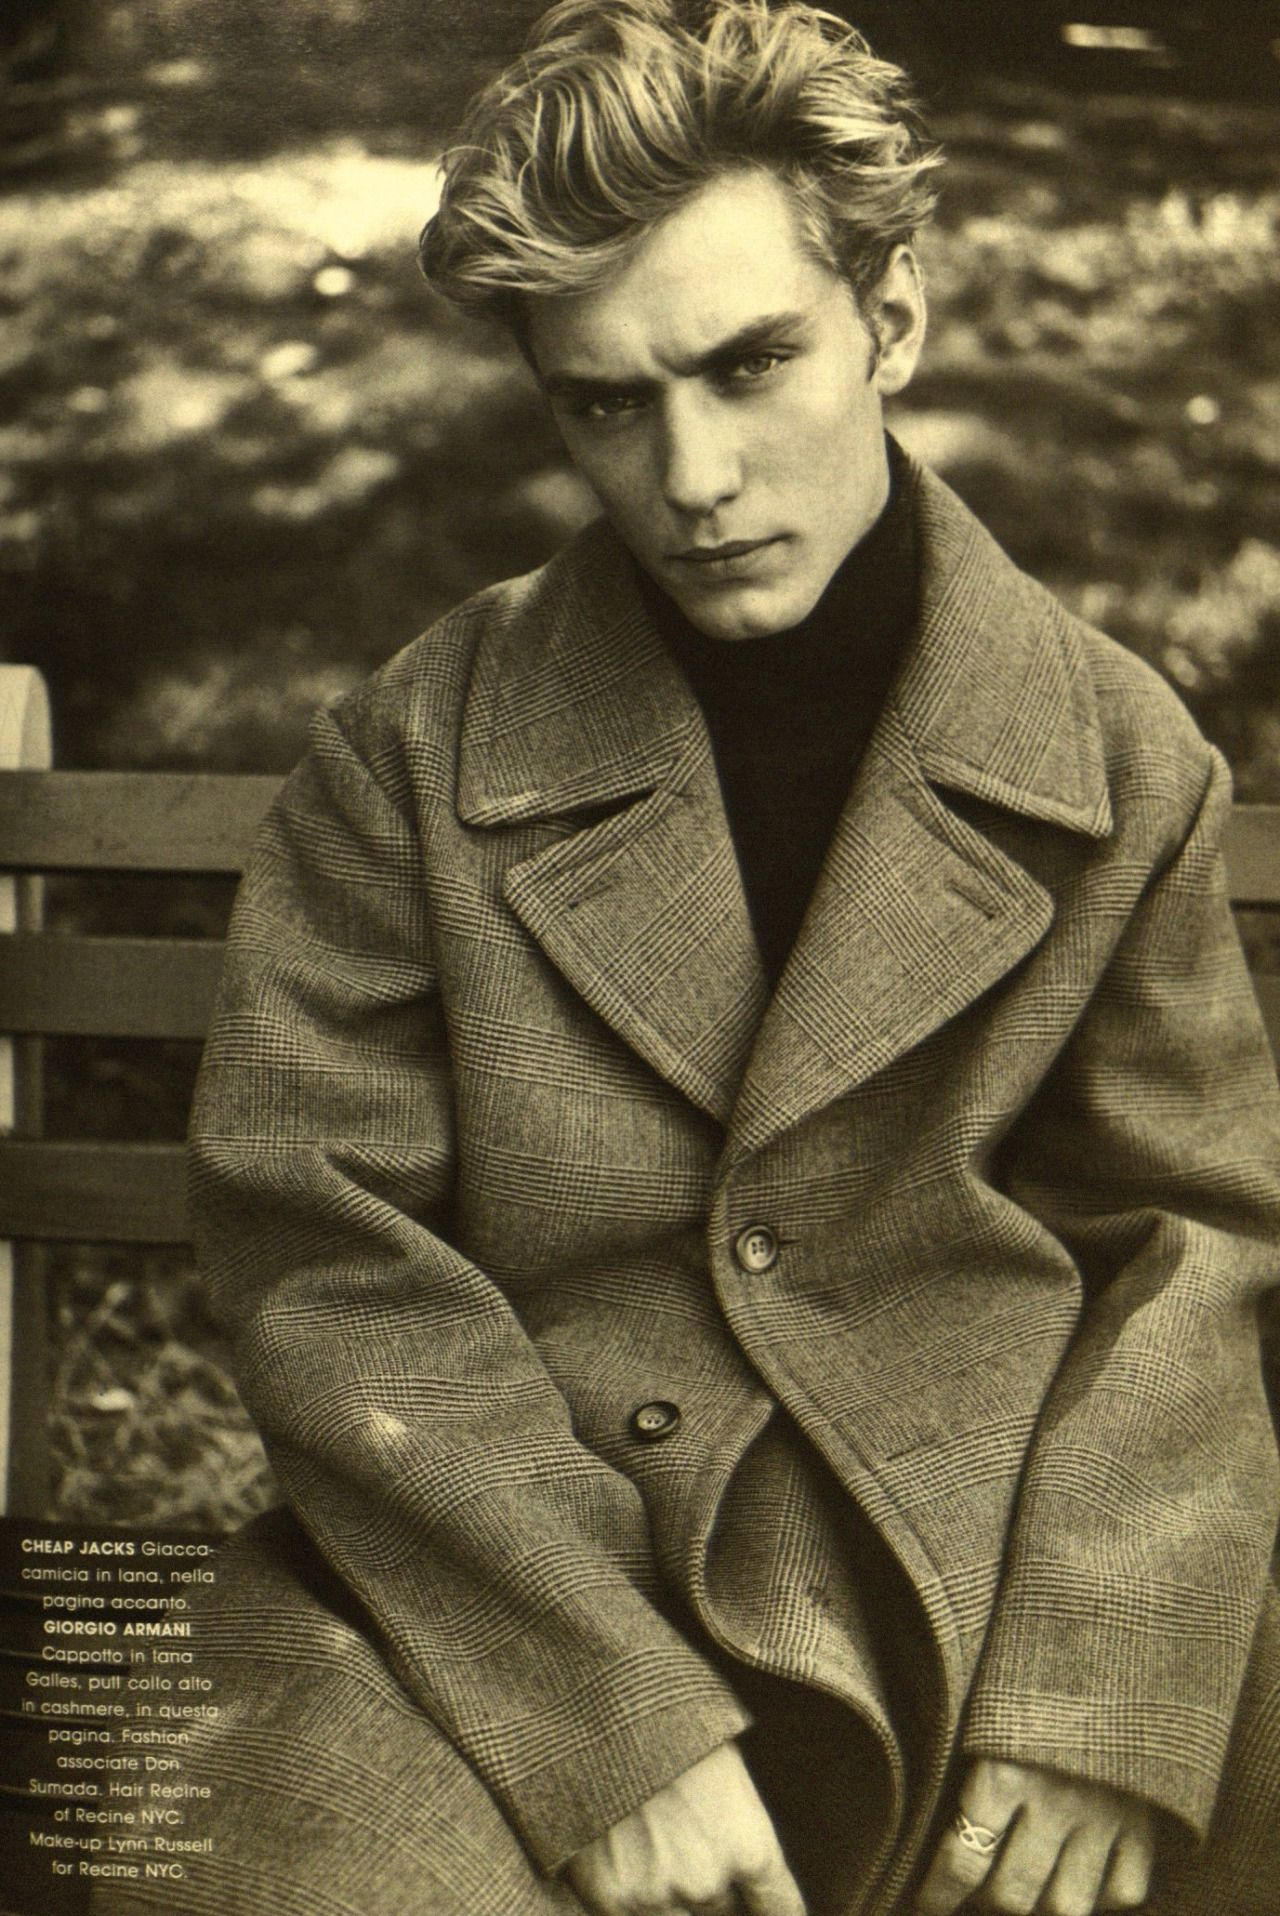 Hairstyle Editor For Men Jude Law 1995 Luomo Vogue Fashion Editor Paul Sinclaire Mens